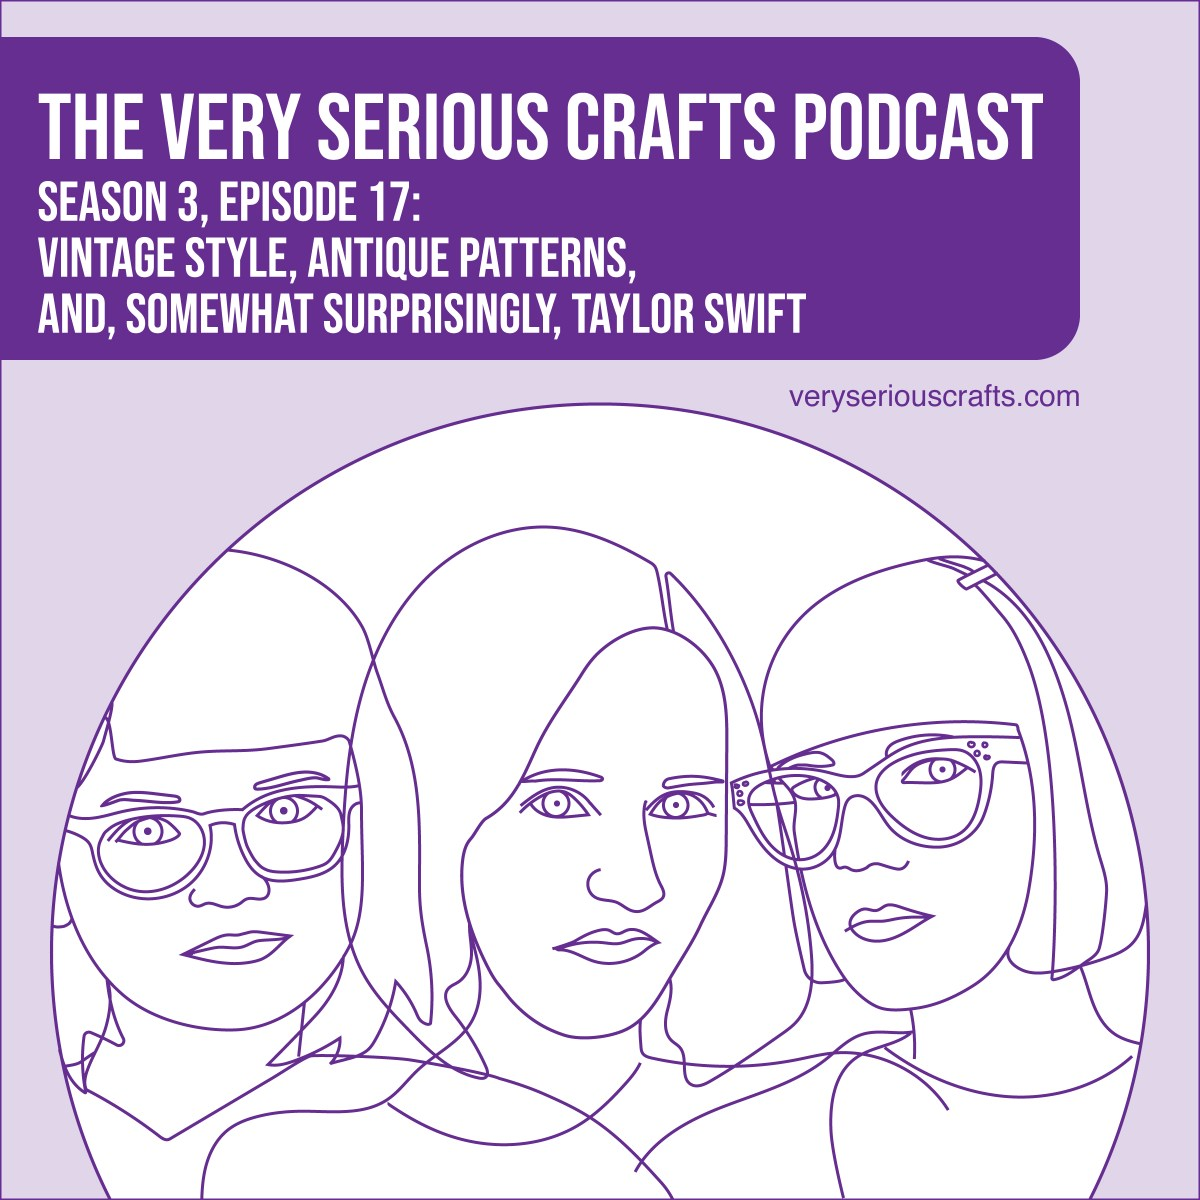 The Very Serious Crafts Podcast, Season 3: Episode 17 – Vintage Style, Antique Patterns, and, Somewhat Surprisingly, Taylor Swift